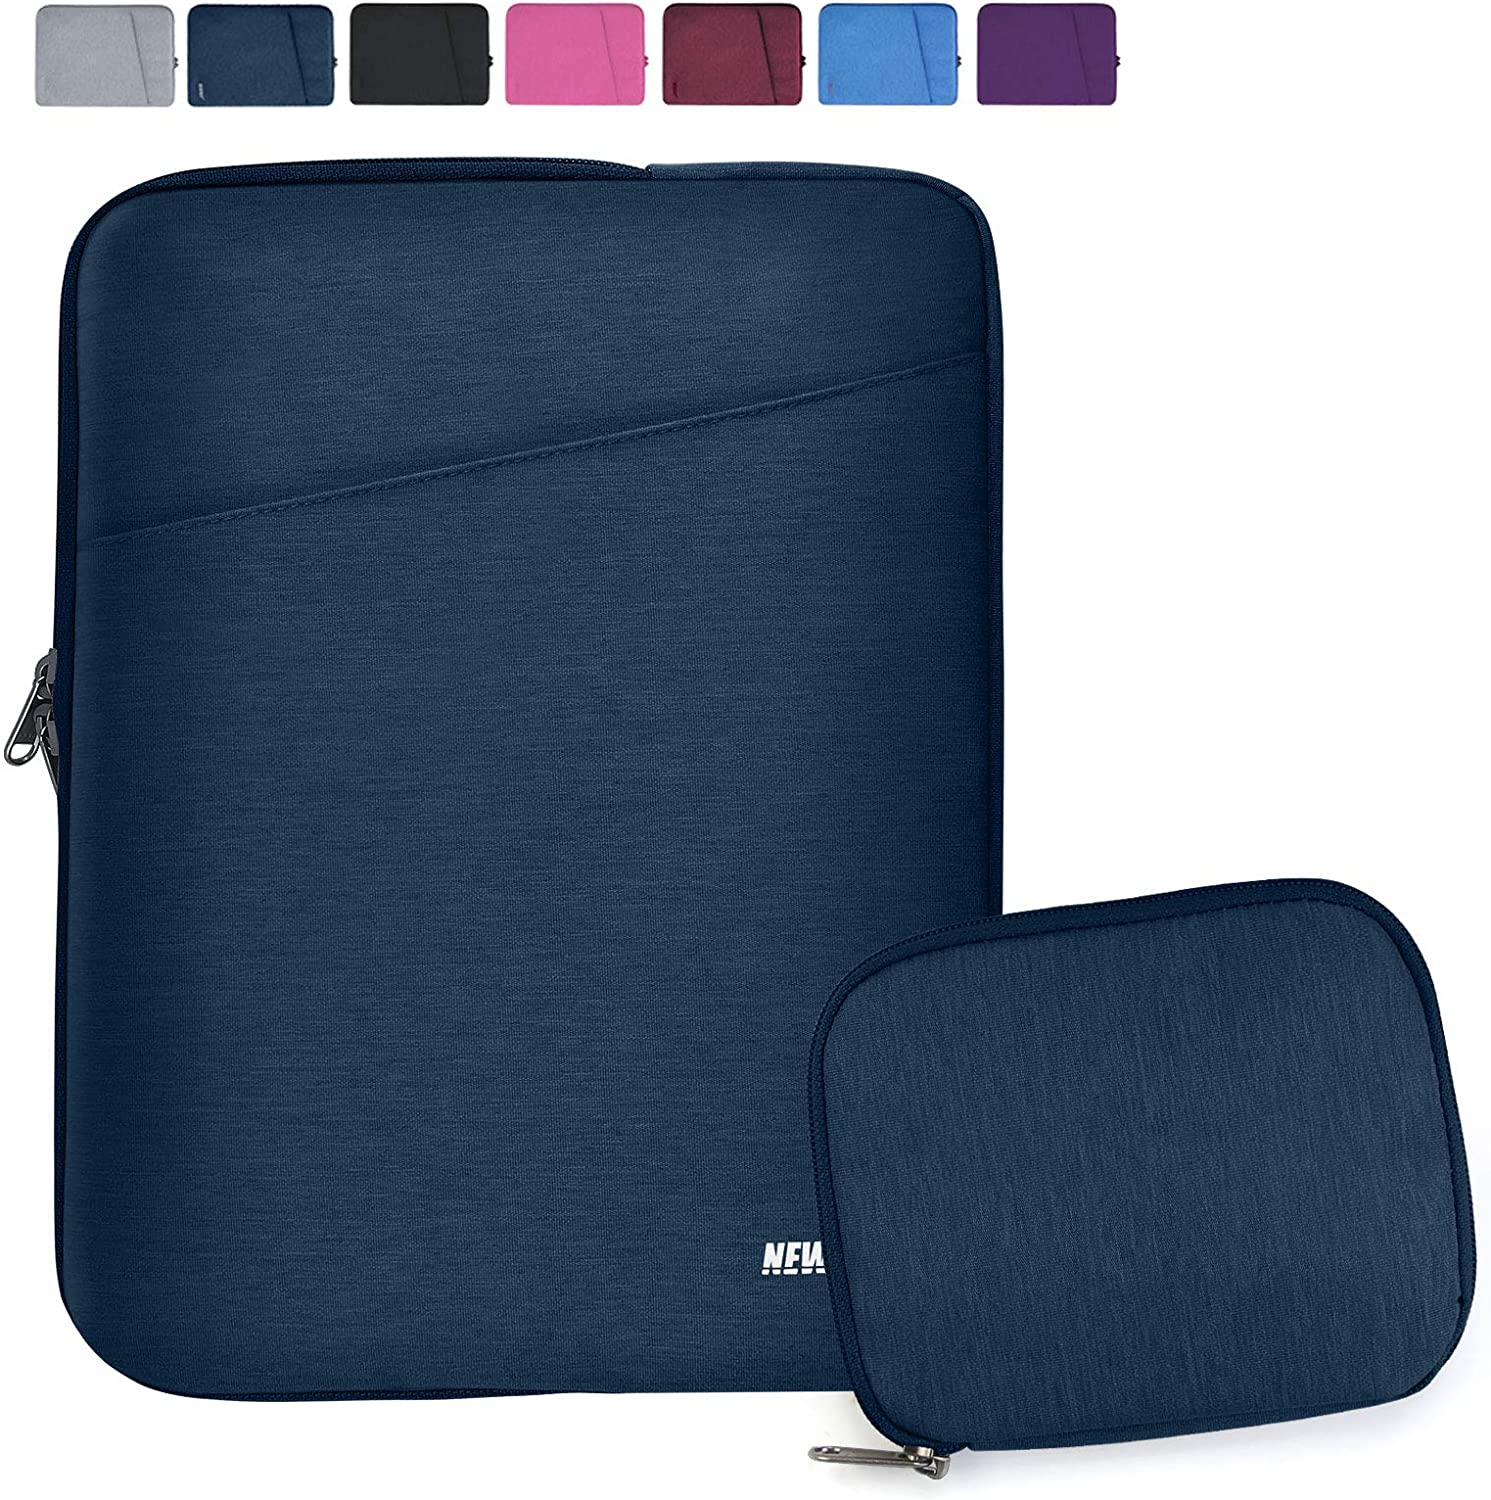 "NEWHEY Laptop Sleeve 15.6 Inch Computer Bag Multi-Color Choices Case, Water-Resistant Notebook Pocket Tablet Briefcase,Compatible with 15.4-Inch MacBook Pro 2012 A1286,and Most 15.6"" Laptop,Navy Blue"